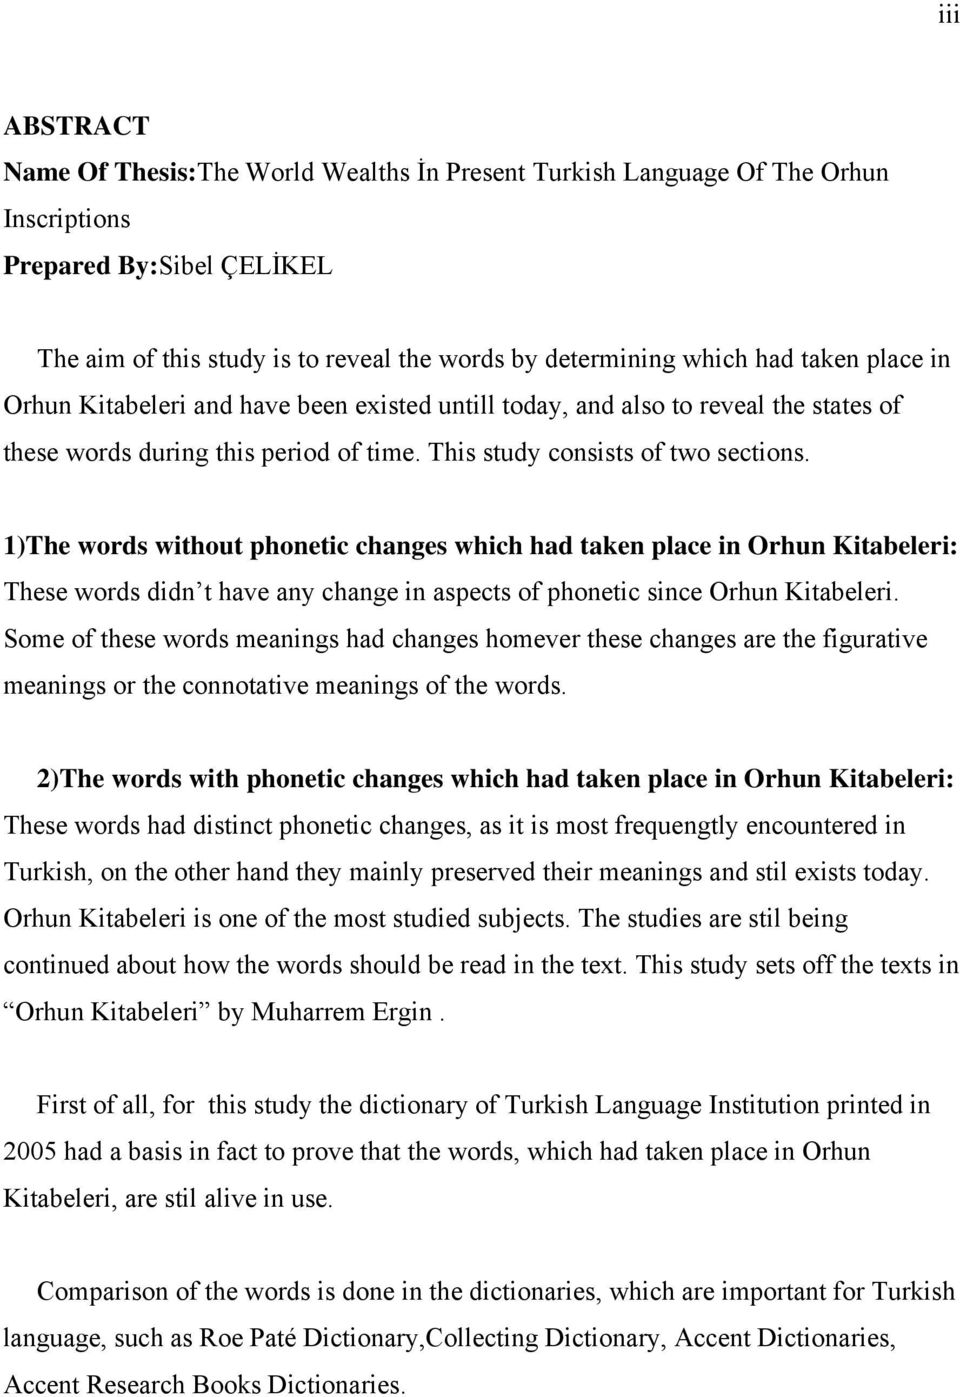 1)The words without phonetic changes which had taken place in Orhun Kitabeleri: These words didn t have any change in aspects of phonetic since Orhun Kitabeleri.